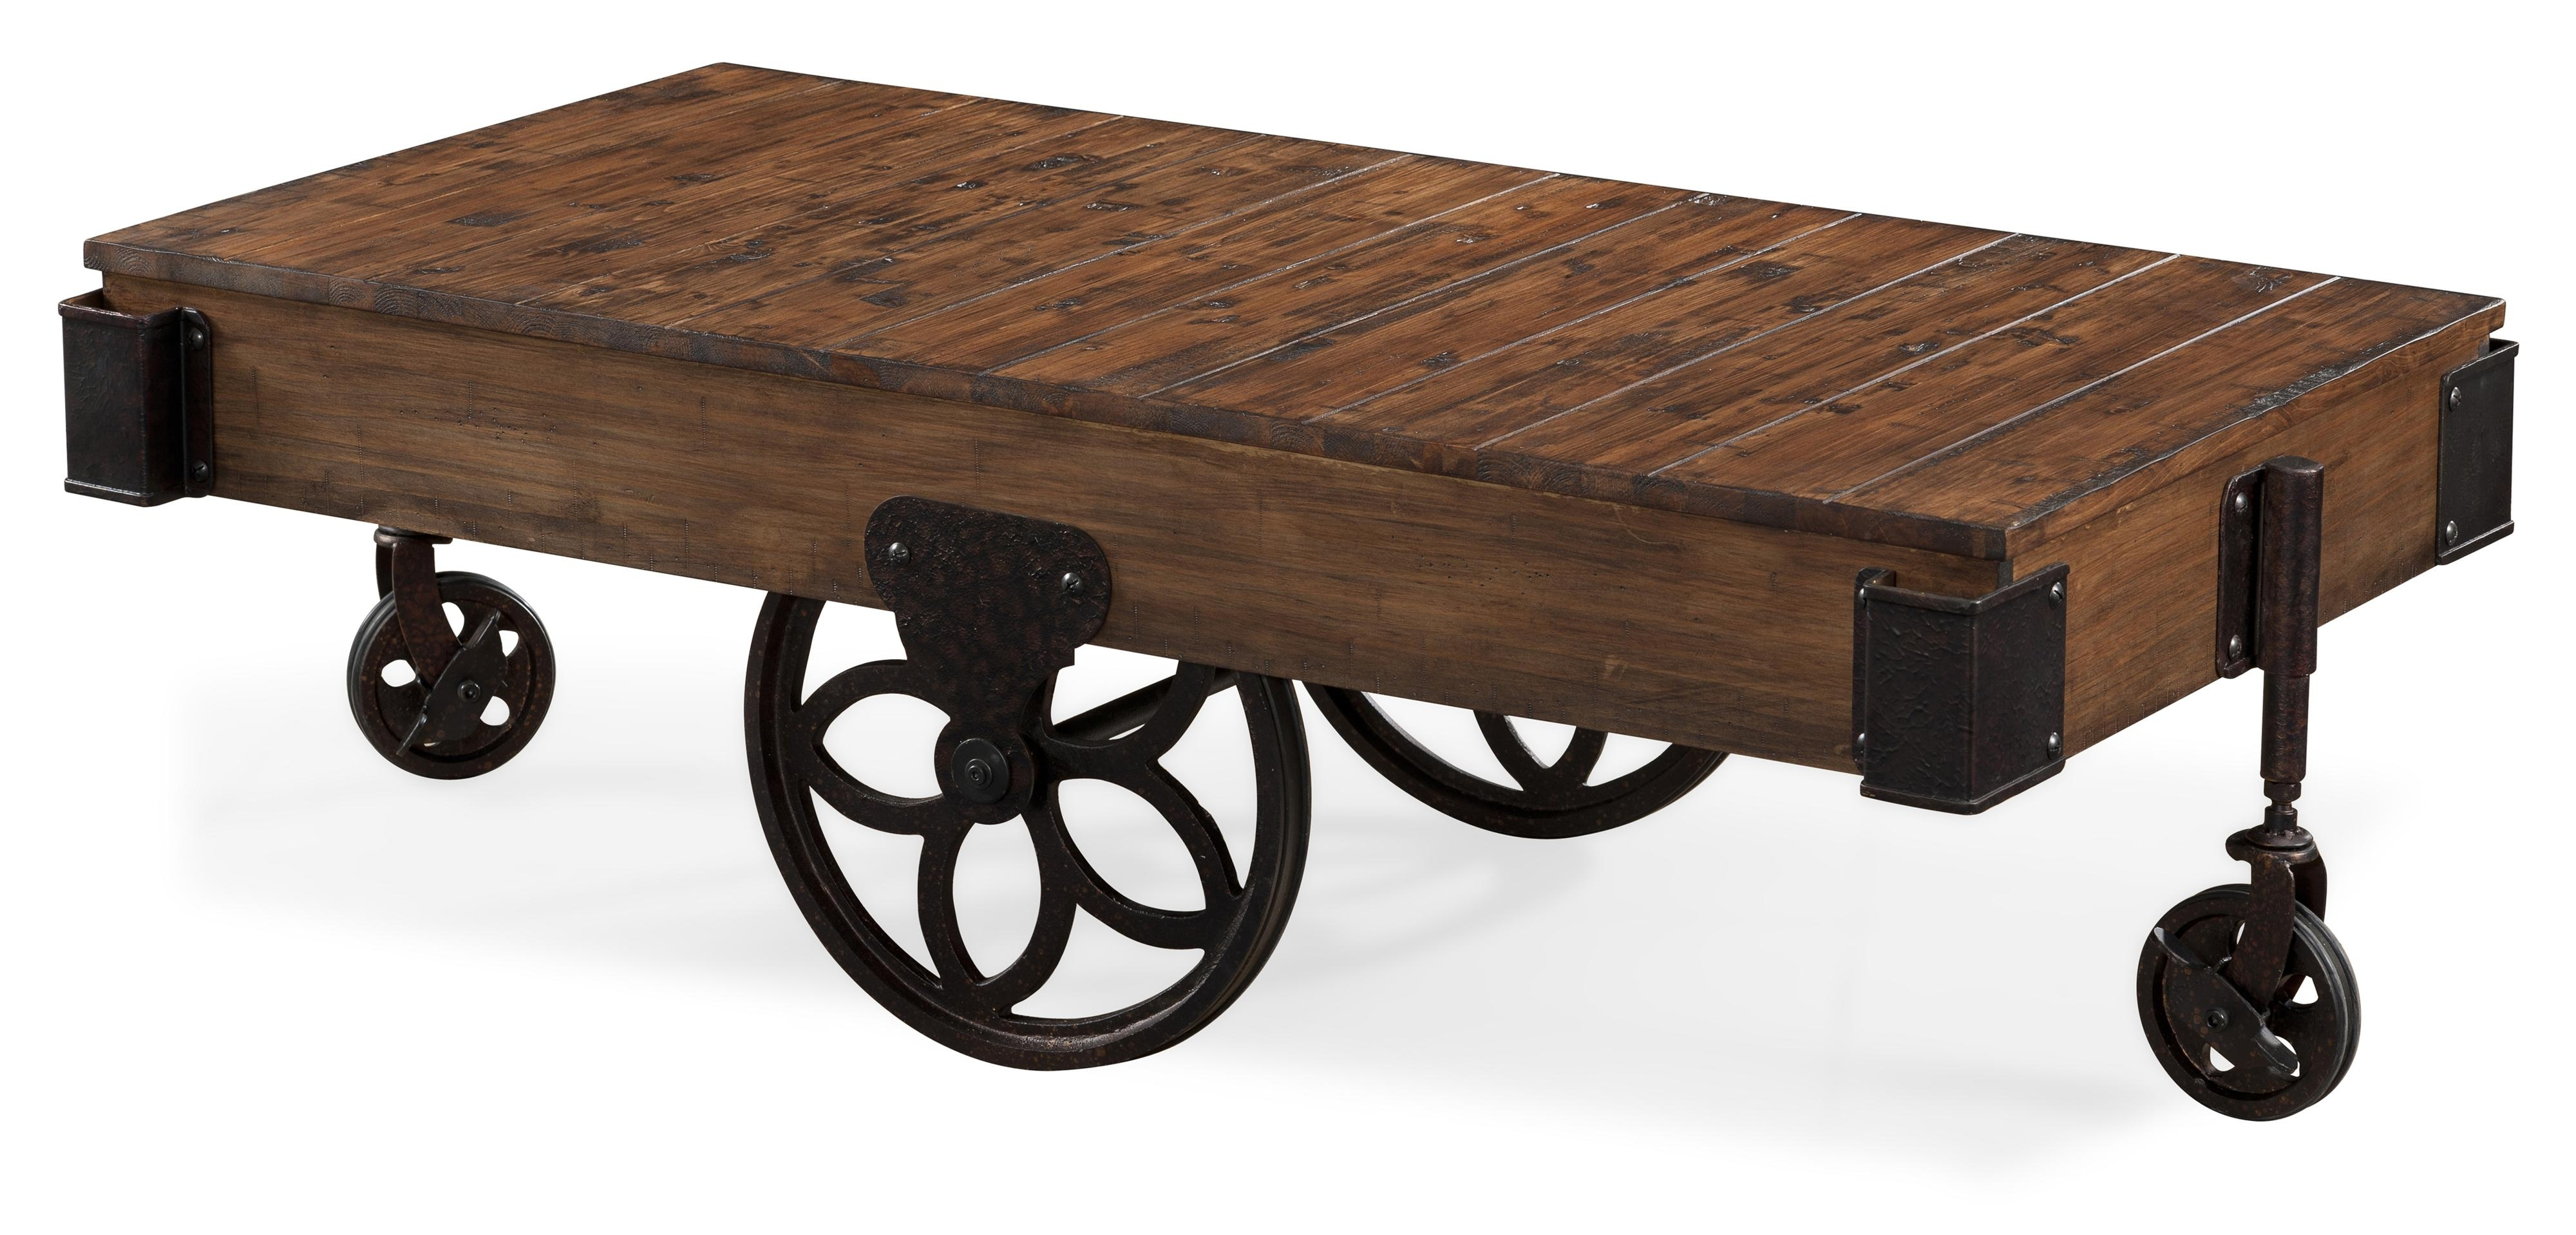 Preferred Ontario Cocktail Tables With Casters With Regard To Magnussen Home Larkin Industrial Style Rectangular Cocktail Table (View 12 of 20)